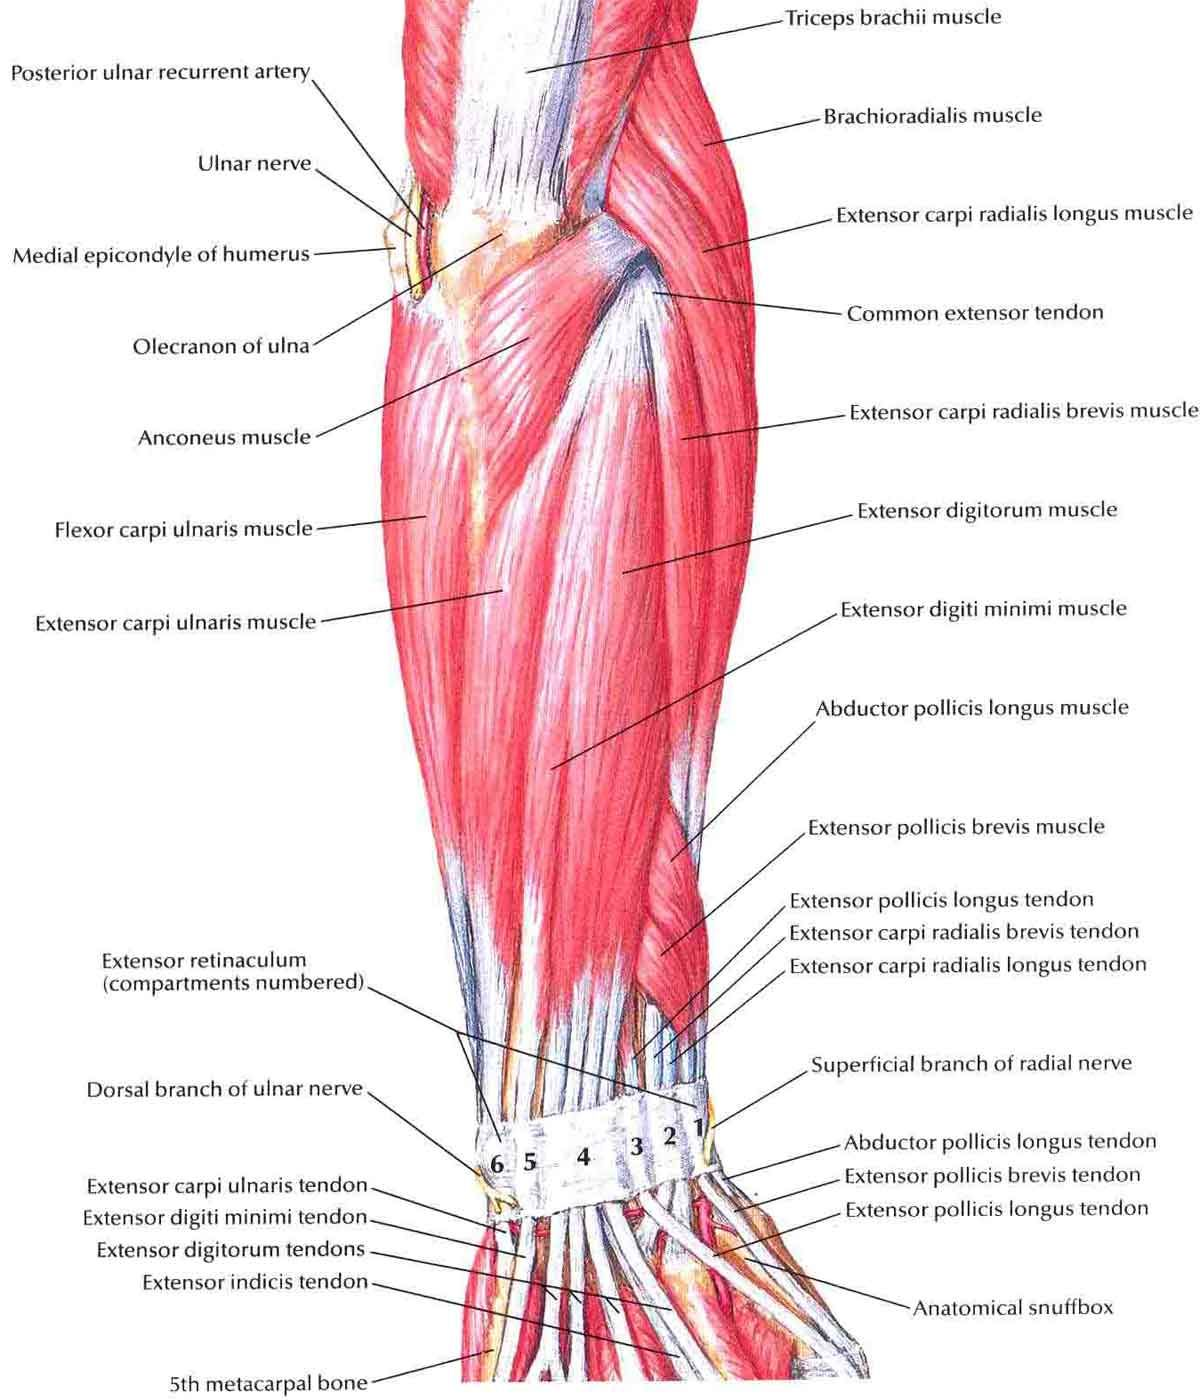 diagram of forearm muscles | Arms Hands Forearms in 2018 | Pinterest ...